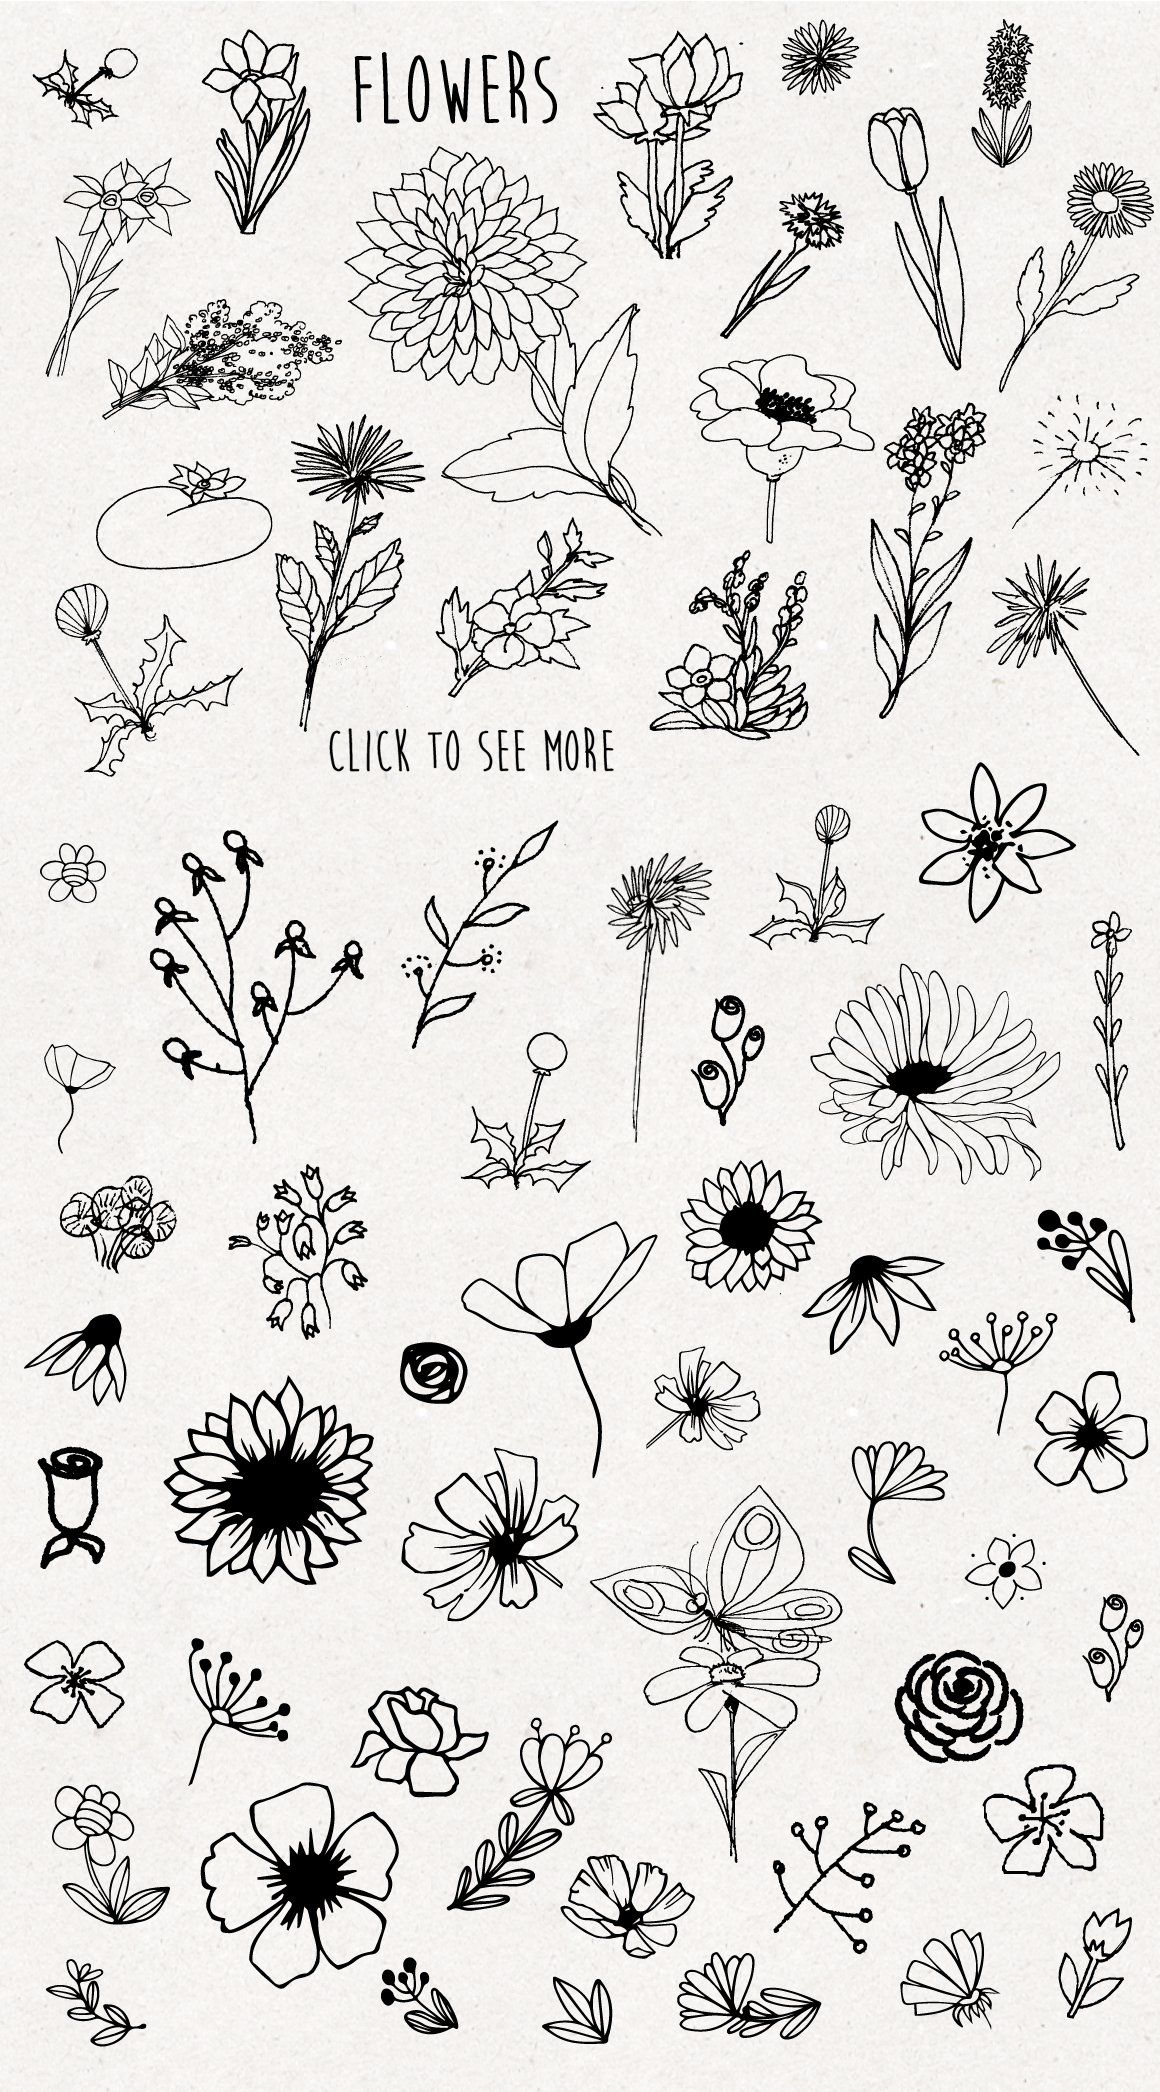 Only Flowers Flower Sketches Floral Drawing Bullet Journal Art